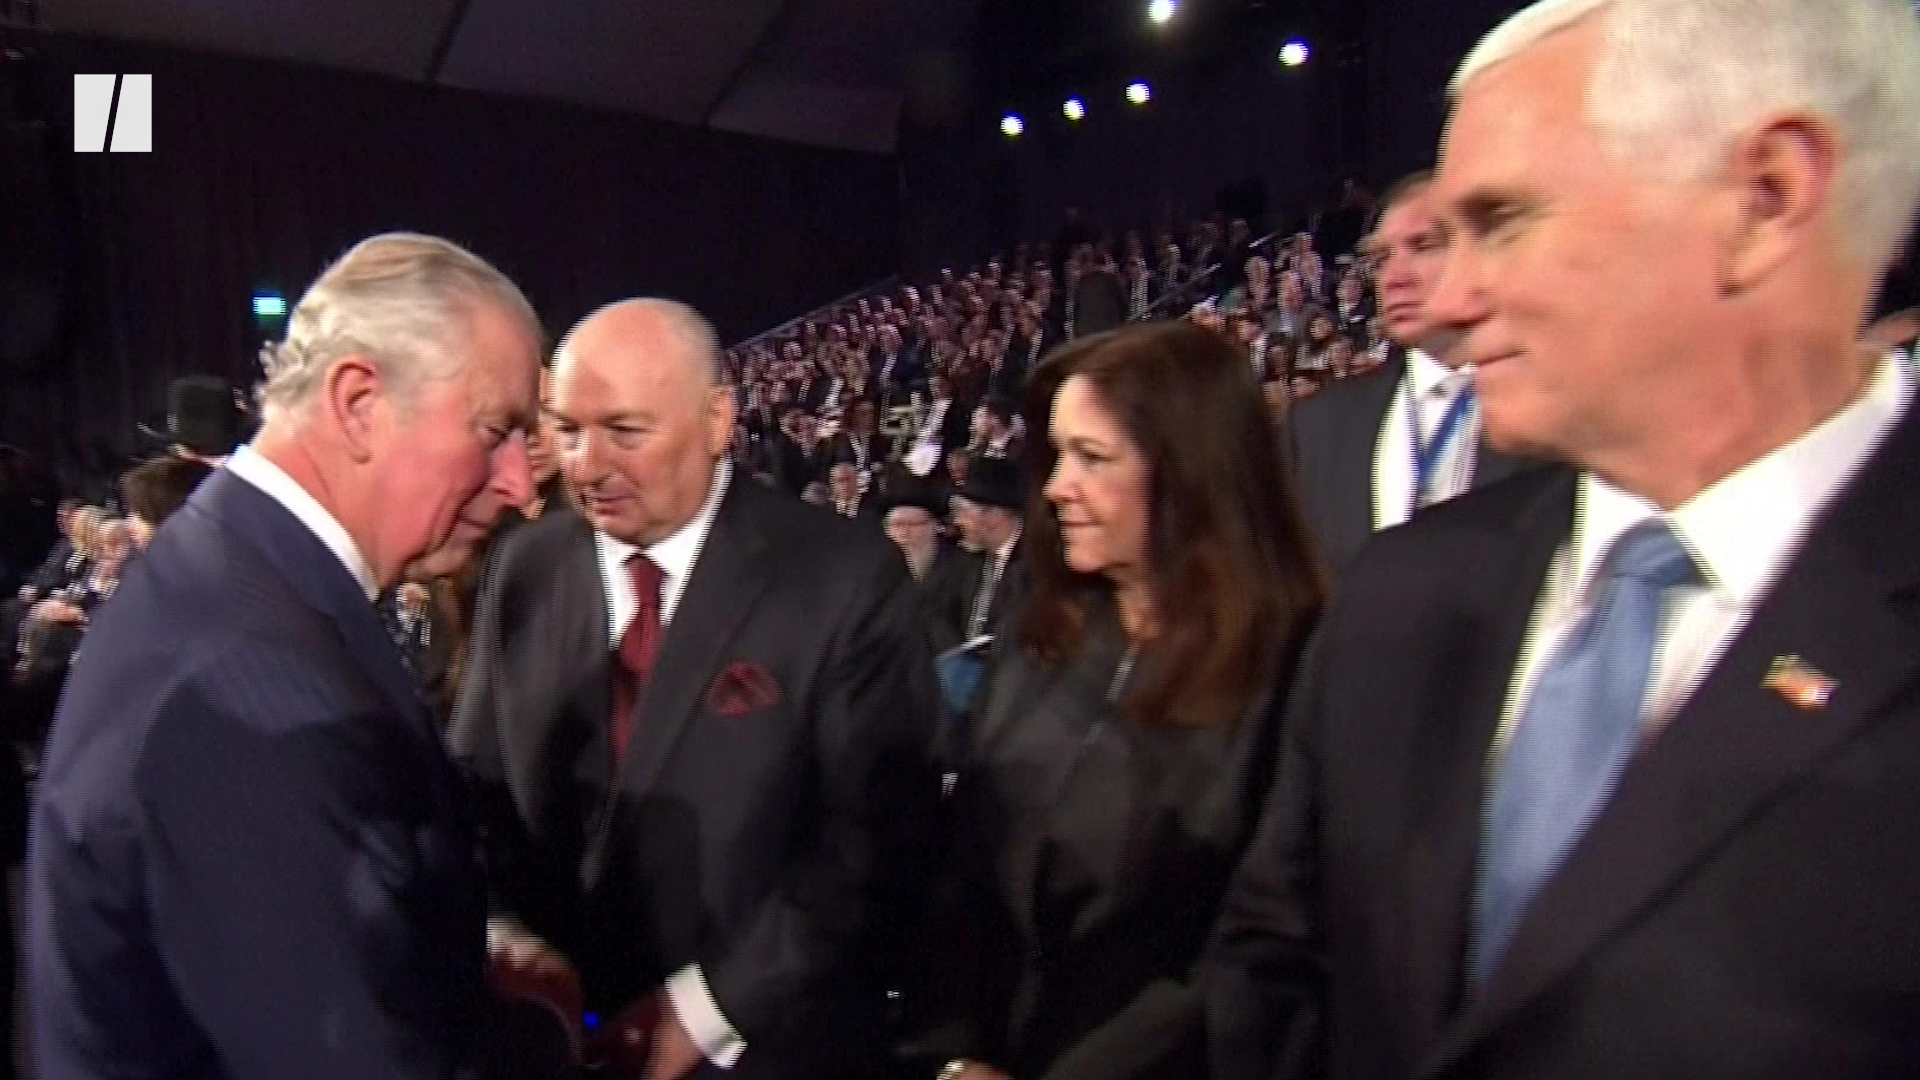 Twitter Users Debate Whether Prince Charles Really Snubbed Mike Pence